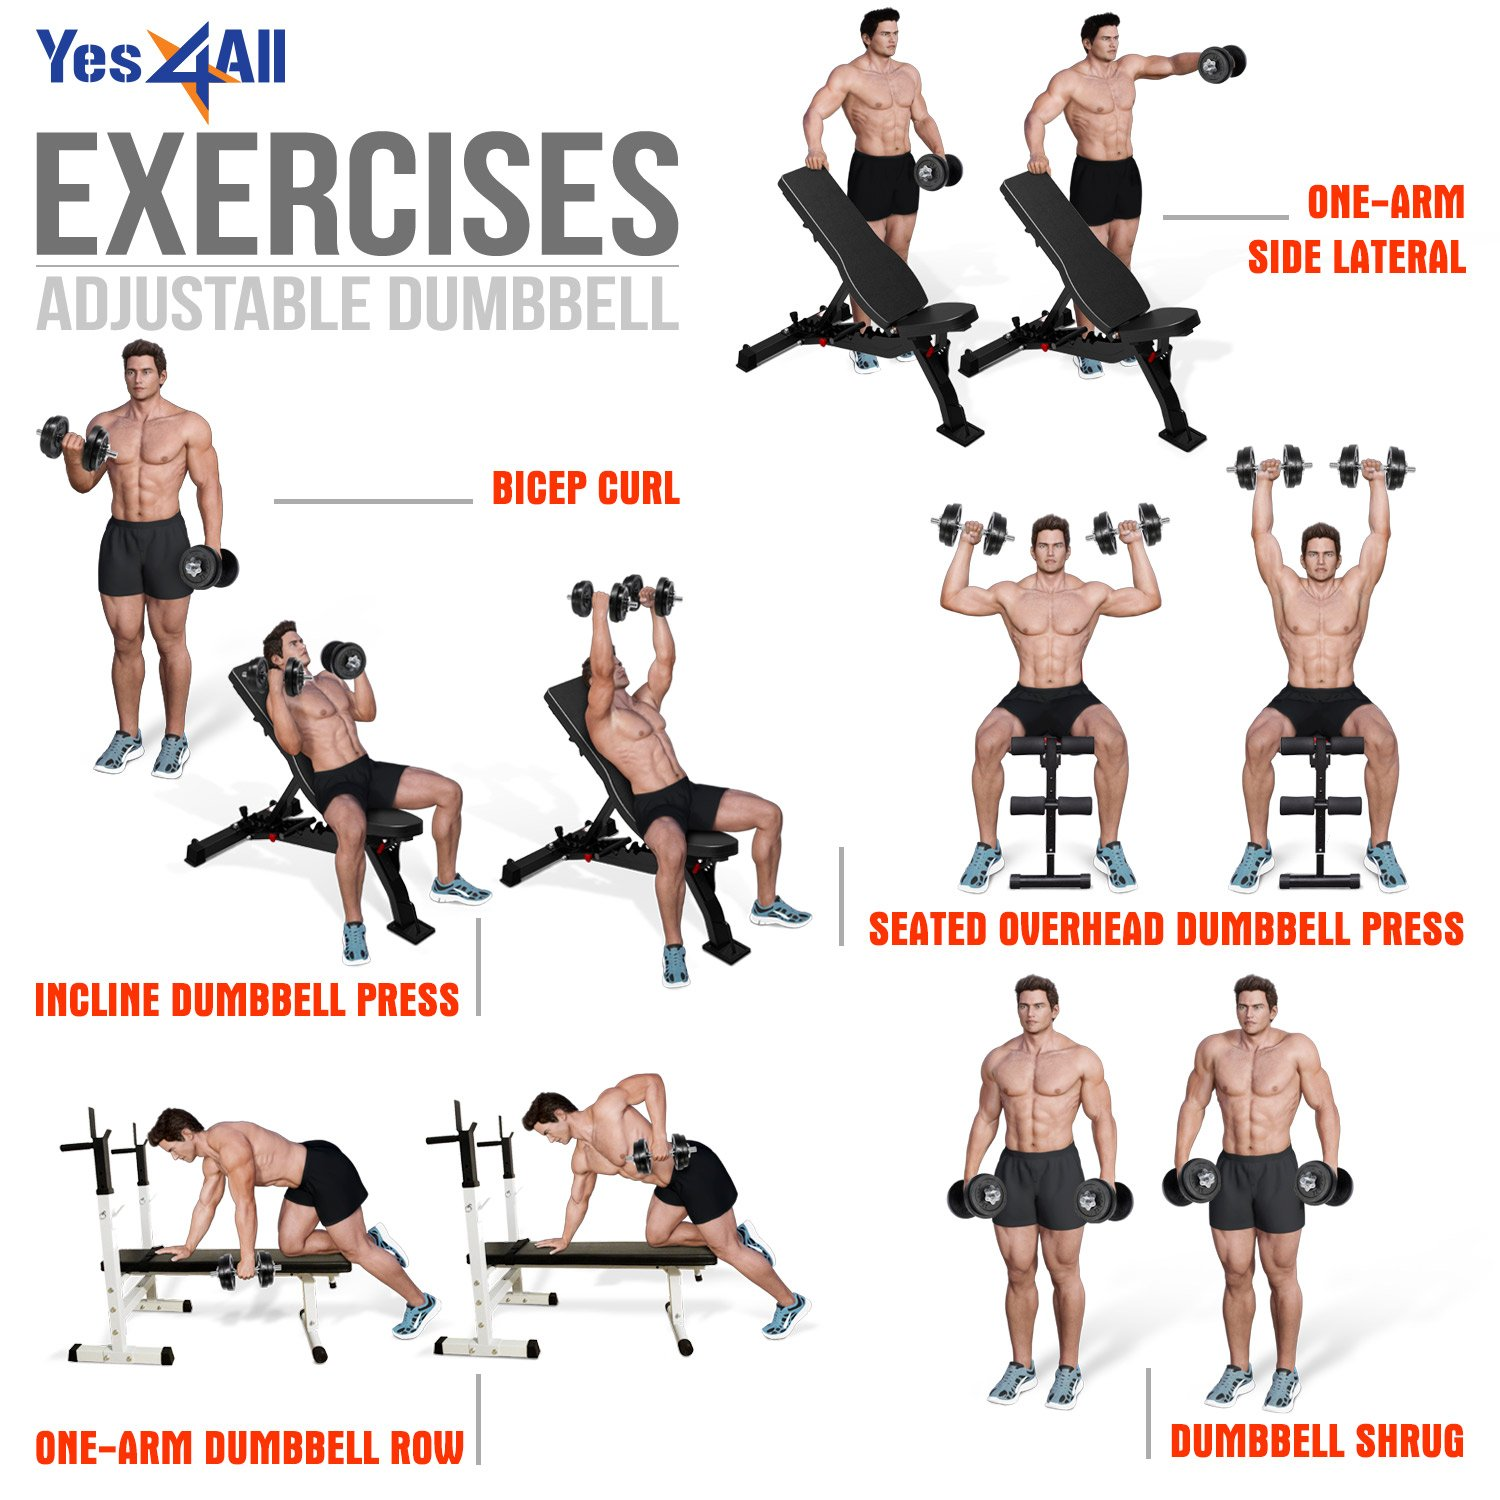 Yes4All Adjustable Dumbbell 40.02 lbs by Yes4All (Image #7)